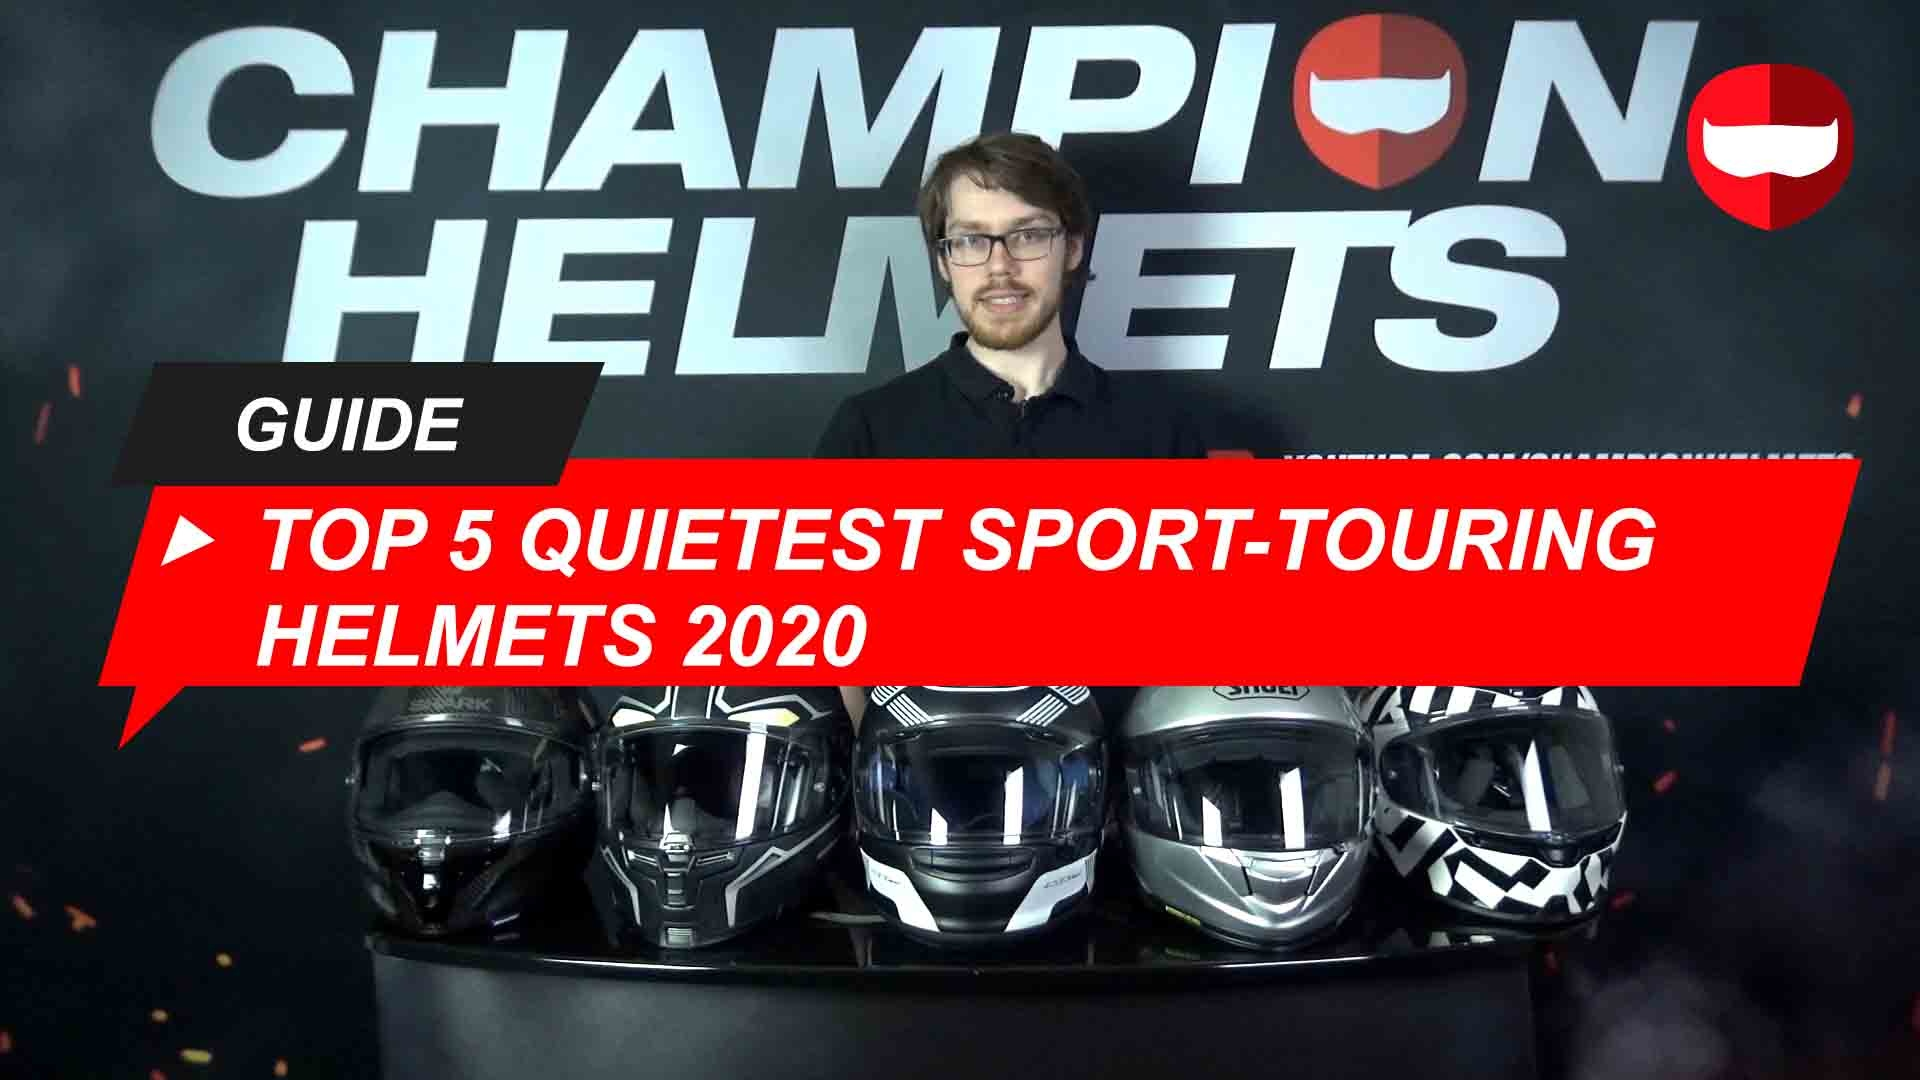 Top 5 Quietest Sport-Touring Helmets 2020 Road Tested with Video